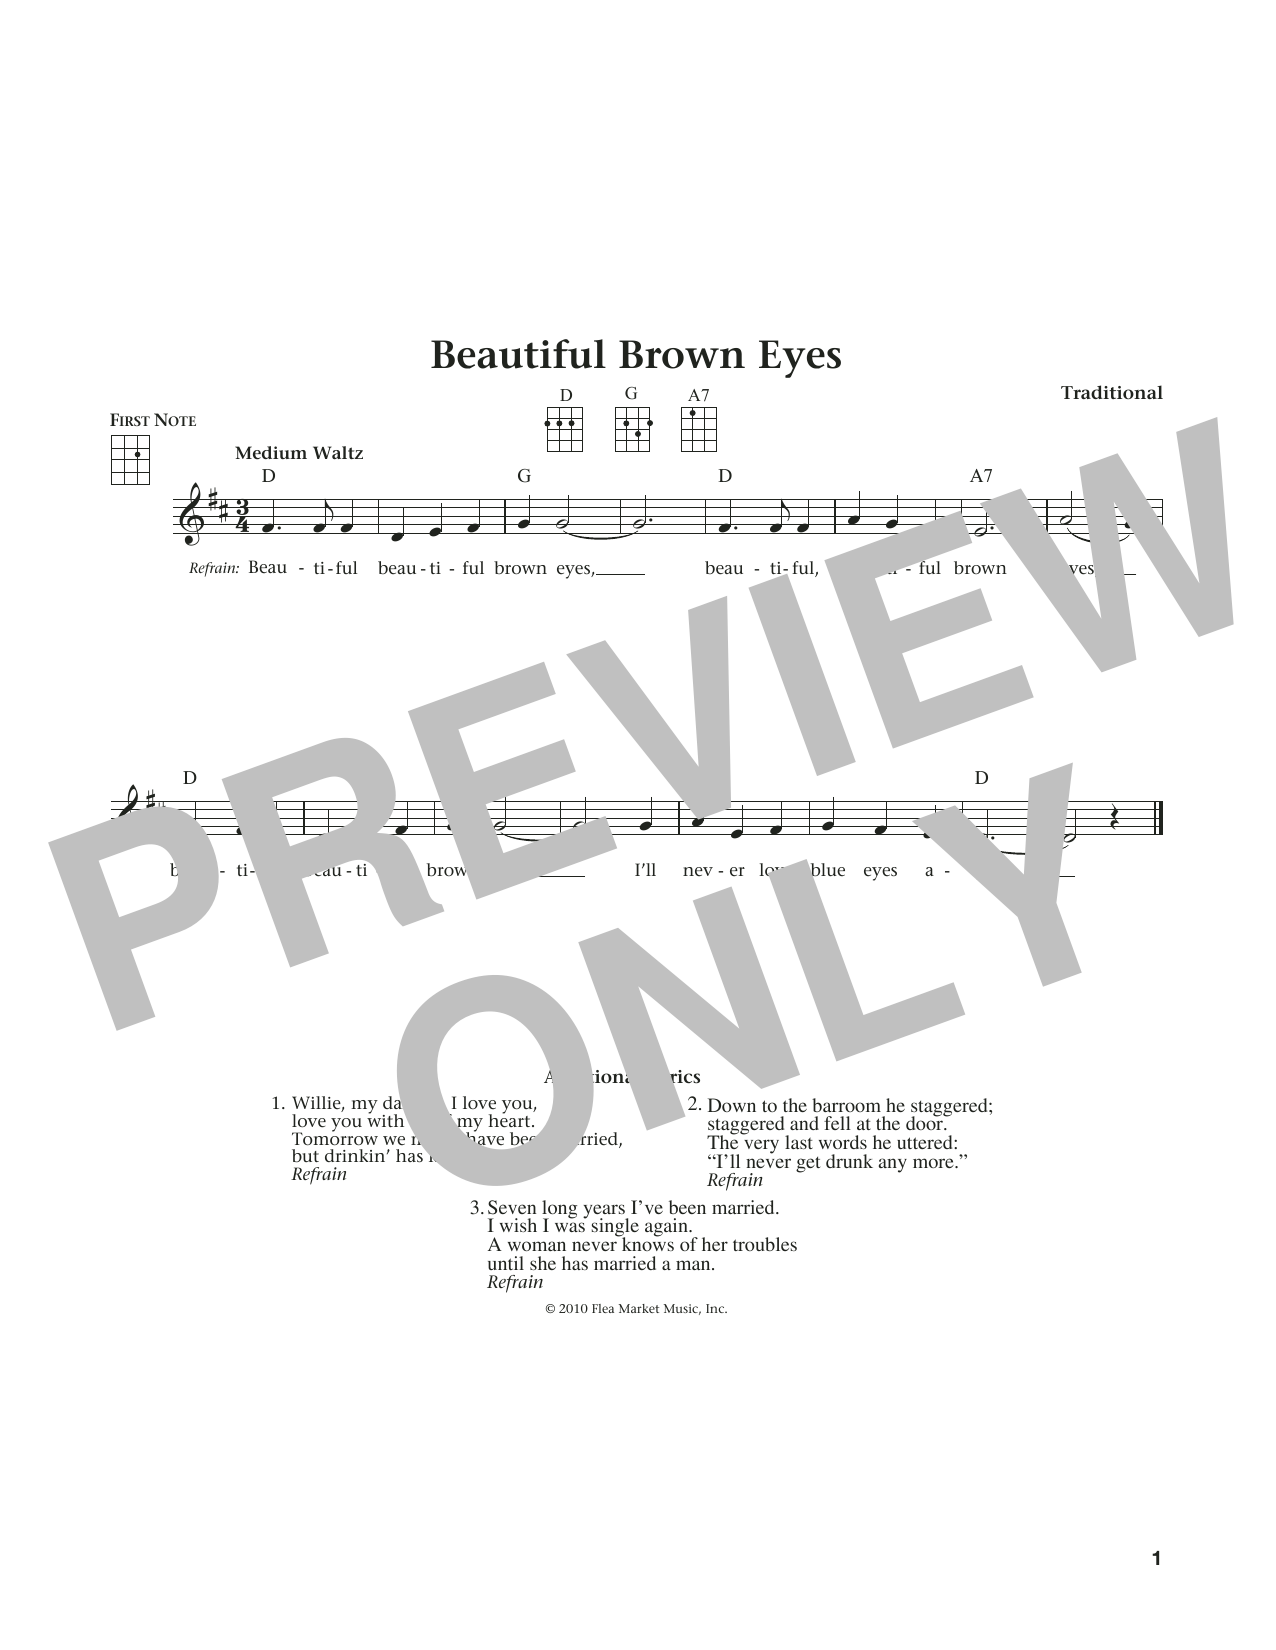 Beautiful Brown Eyes (from The Daily Ukulele) (arr. Liz and Jim Beloff) (Ukulele)